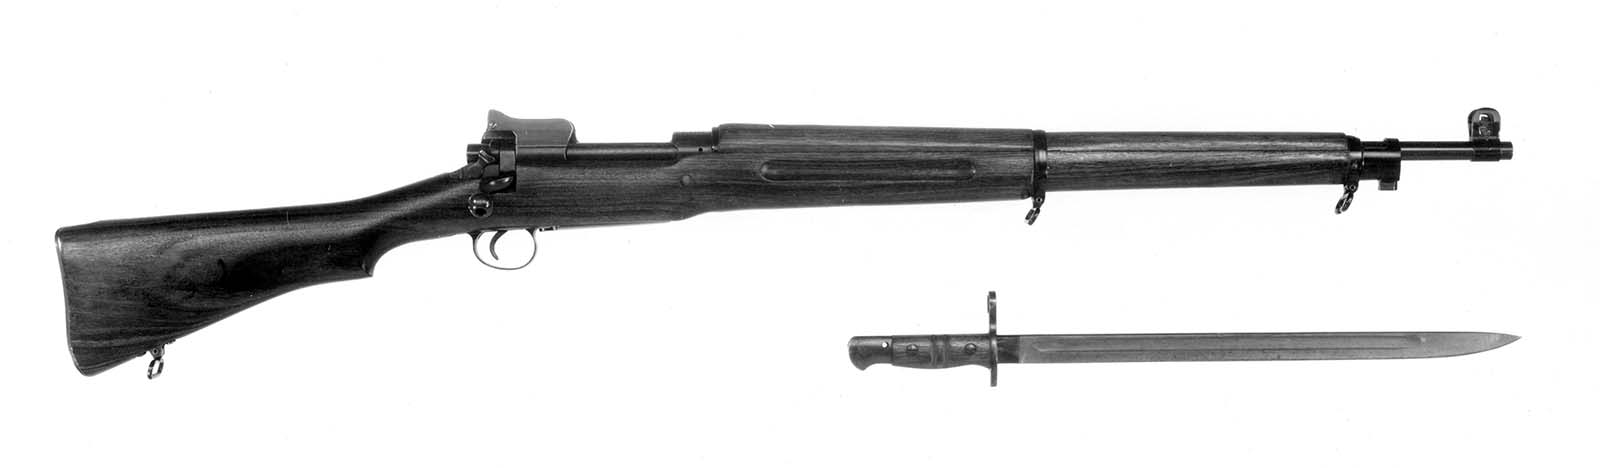 Winchester Model 1917 Enfield (American Enfield) with bayonet. MS 20 Winchester Repeating Arms Company Archive, McCracken Research Library. P.20.0663